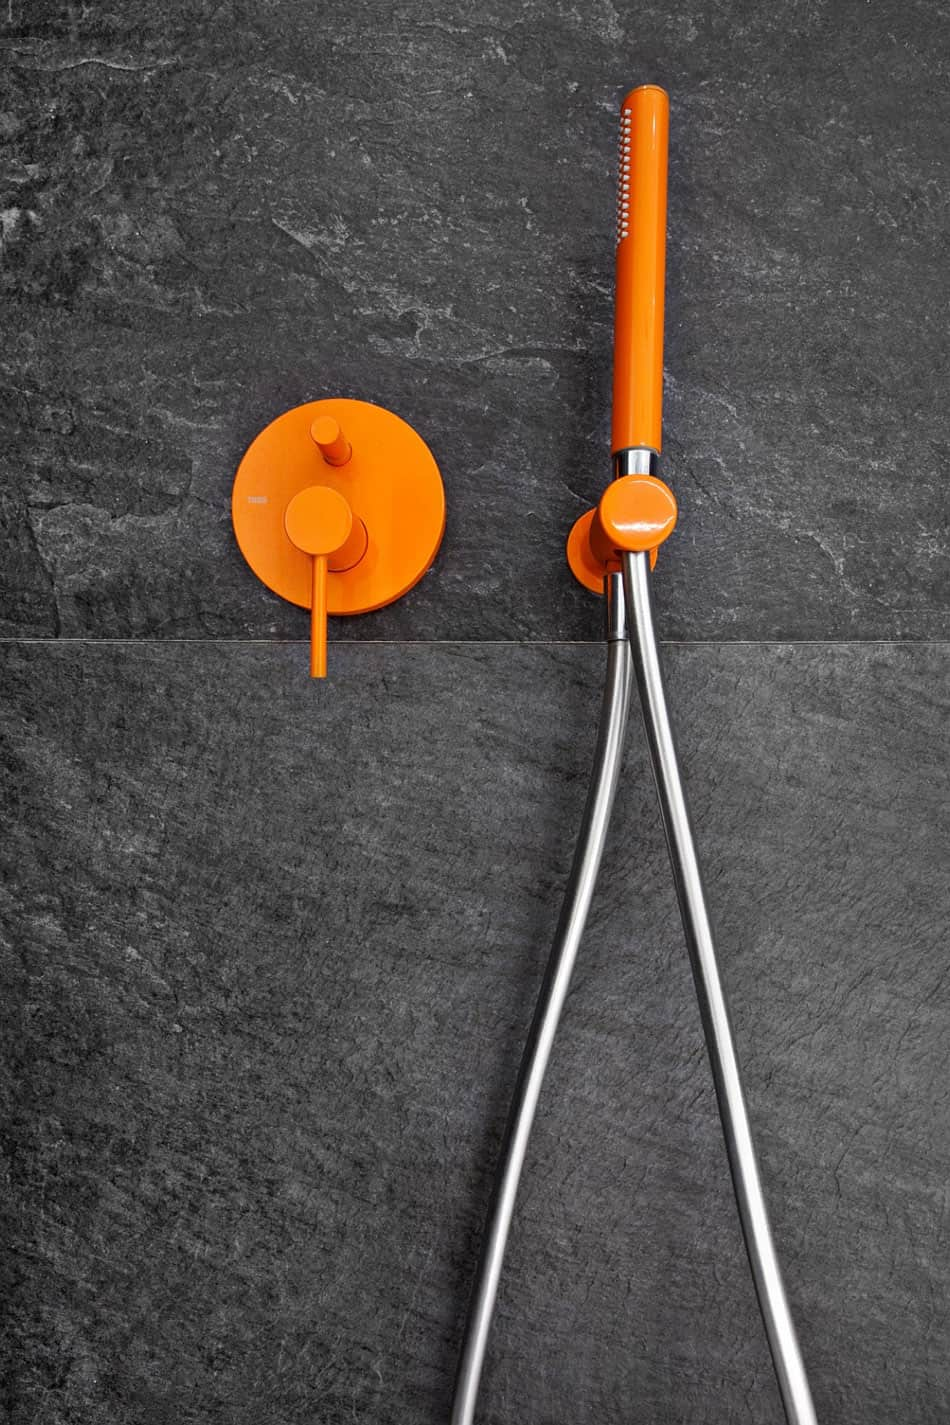 Bright orange hardware accents give more pop to the contrasting color scheme